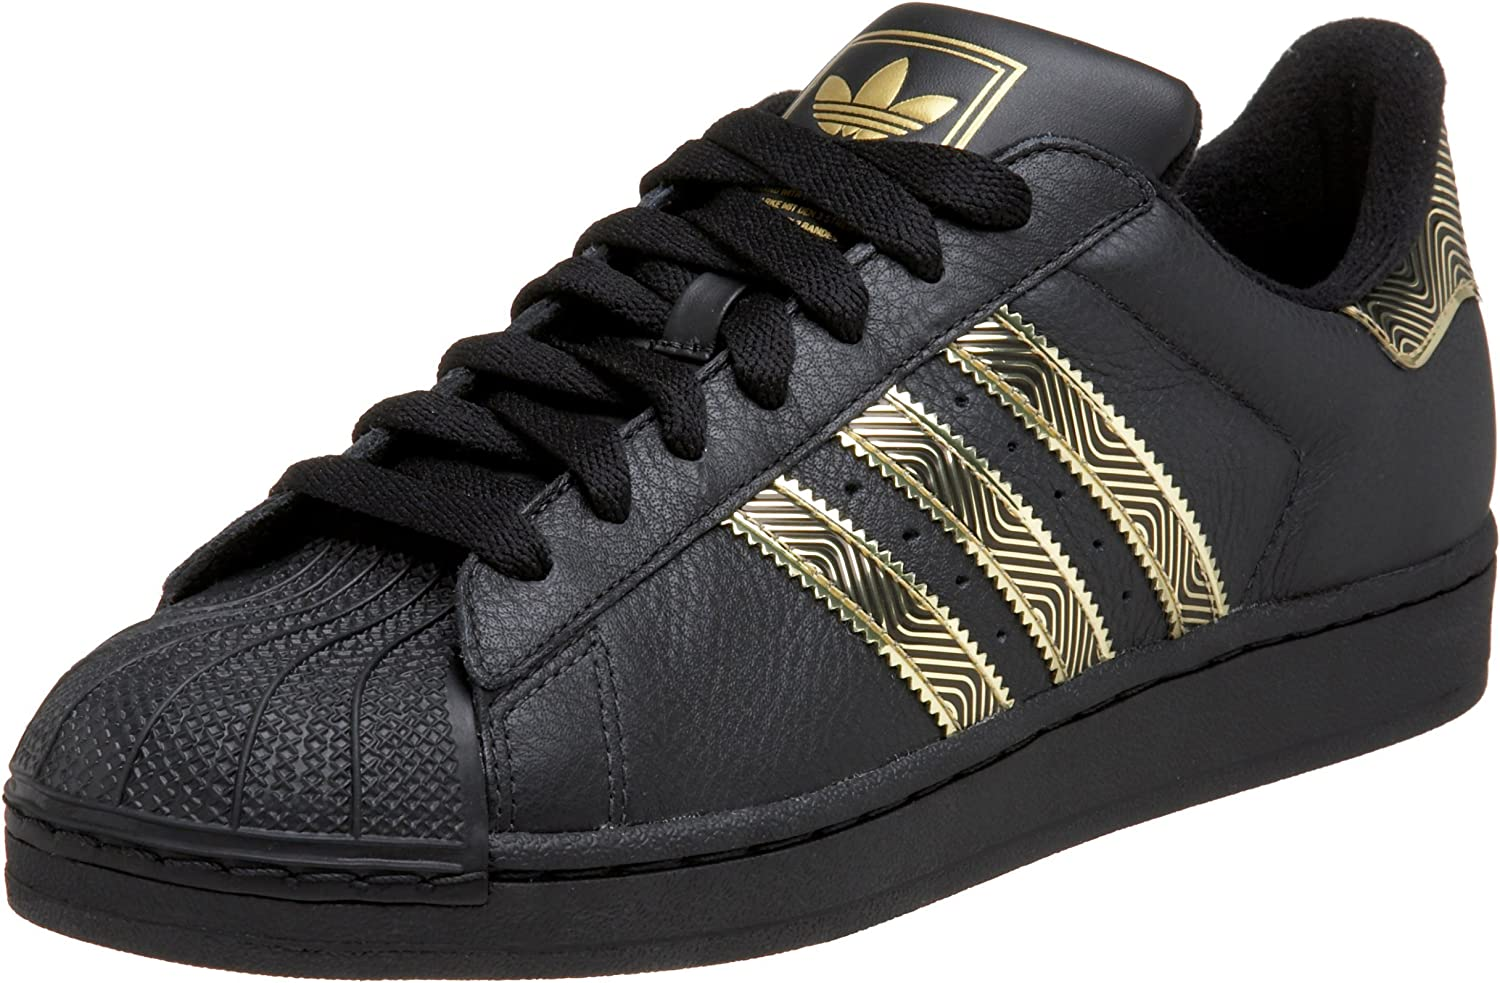 black and gold adidas trainers, OFF 79%,Cheap price!